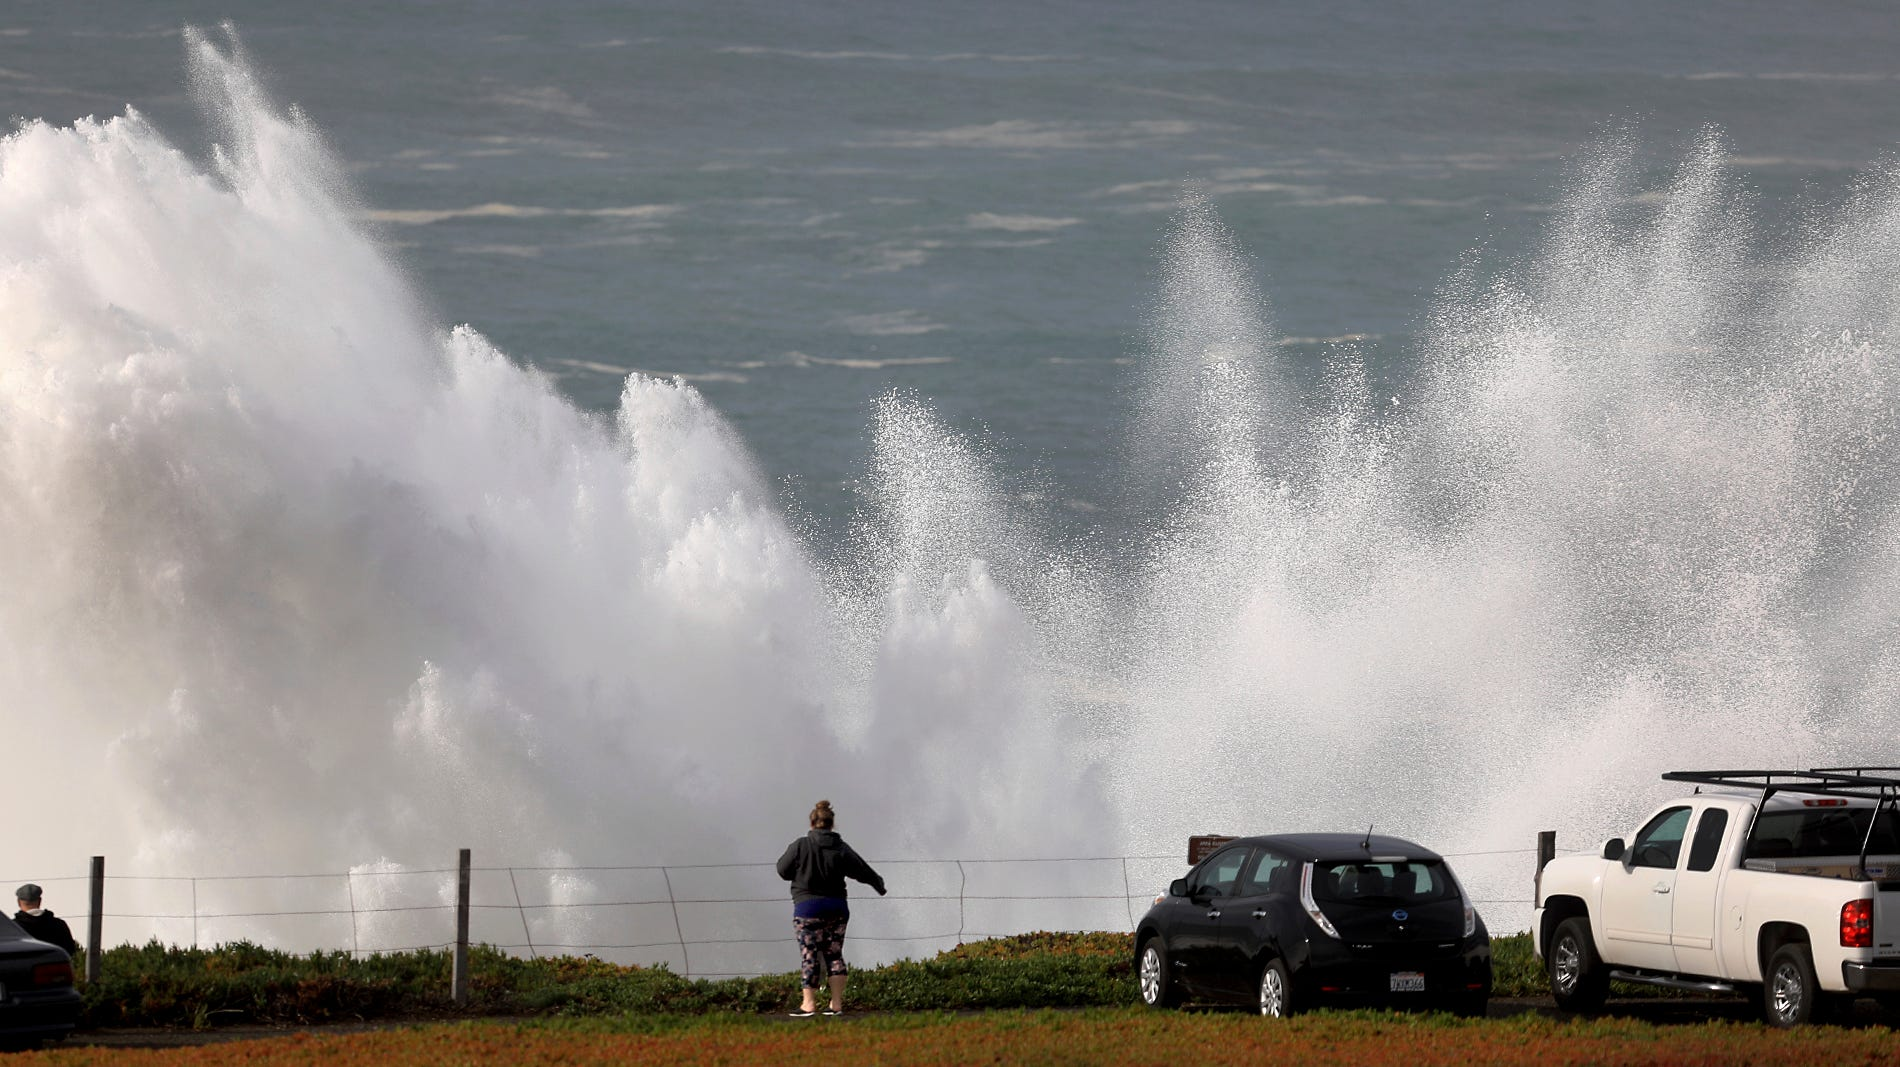 A wave explodes at Duncan's Landing, north of Bodega Bay, Calif., Monday, Dec. 17, 2018, as a large swell train arrive on the Sonoma Coast.